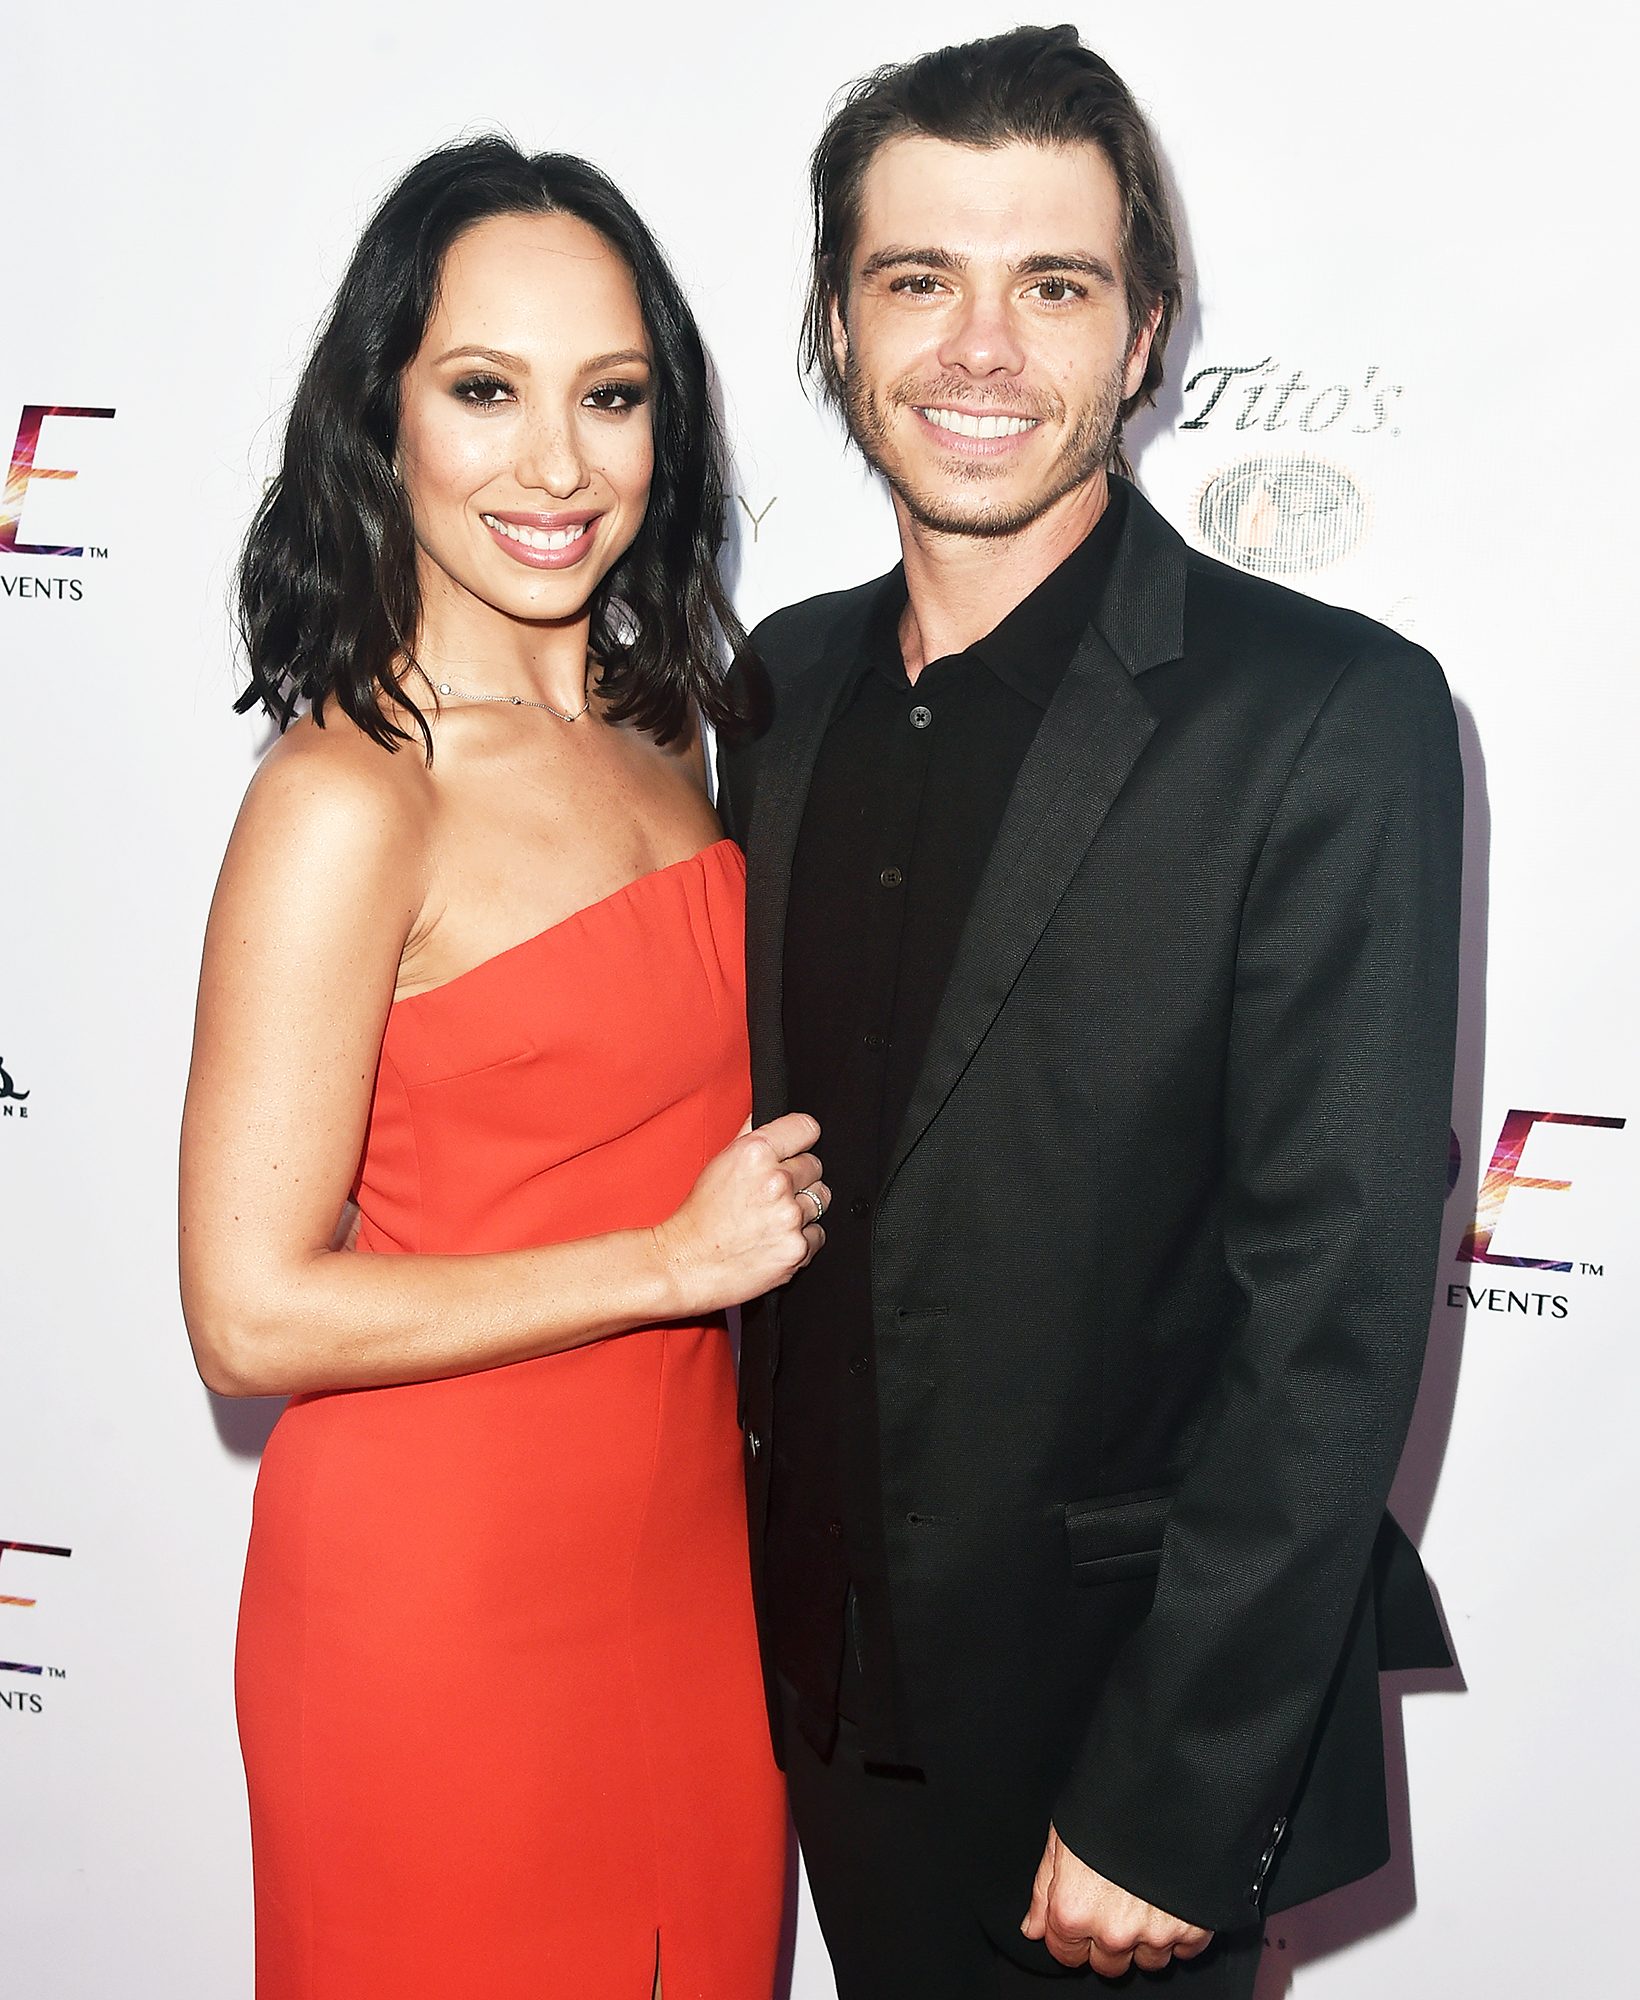 Cheryl Burke Matthew Lawrence Married Next Year - Cheryl Burke and Matthew Lawrence attend the RIDE Foundation's 2nd Annual Dance For Freedom Gala at The Broad Stage on September 29, 2018 in Santa Monica, California.